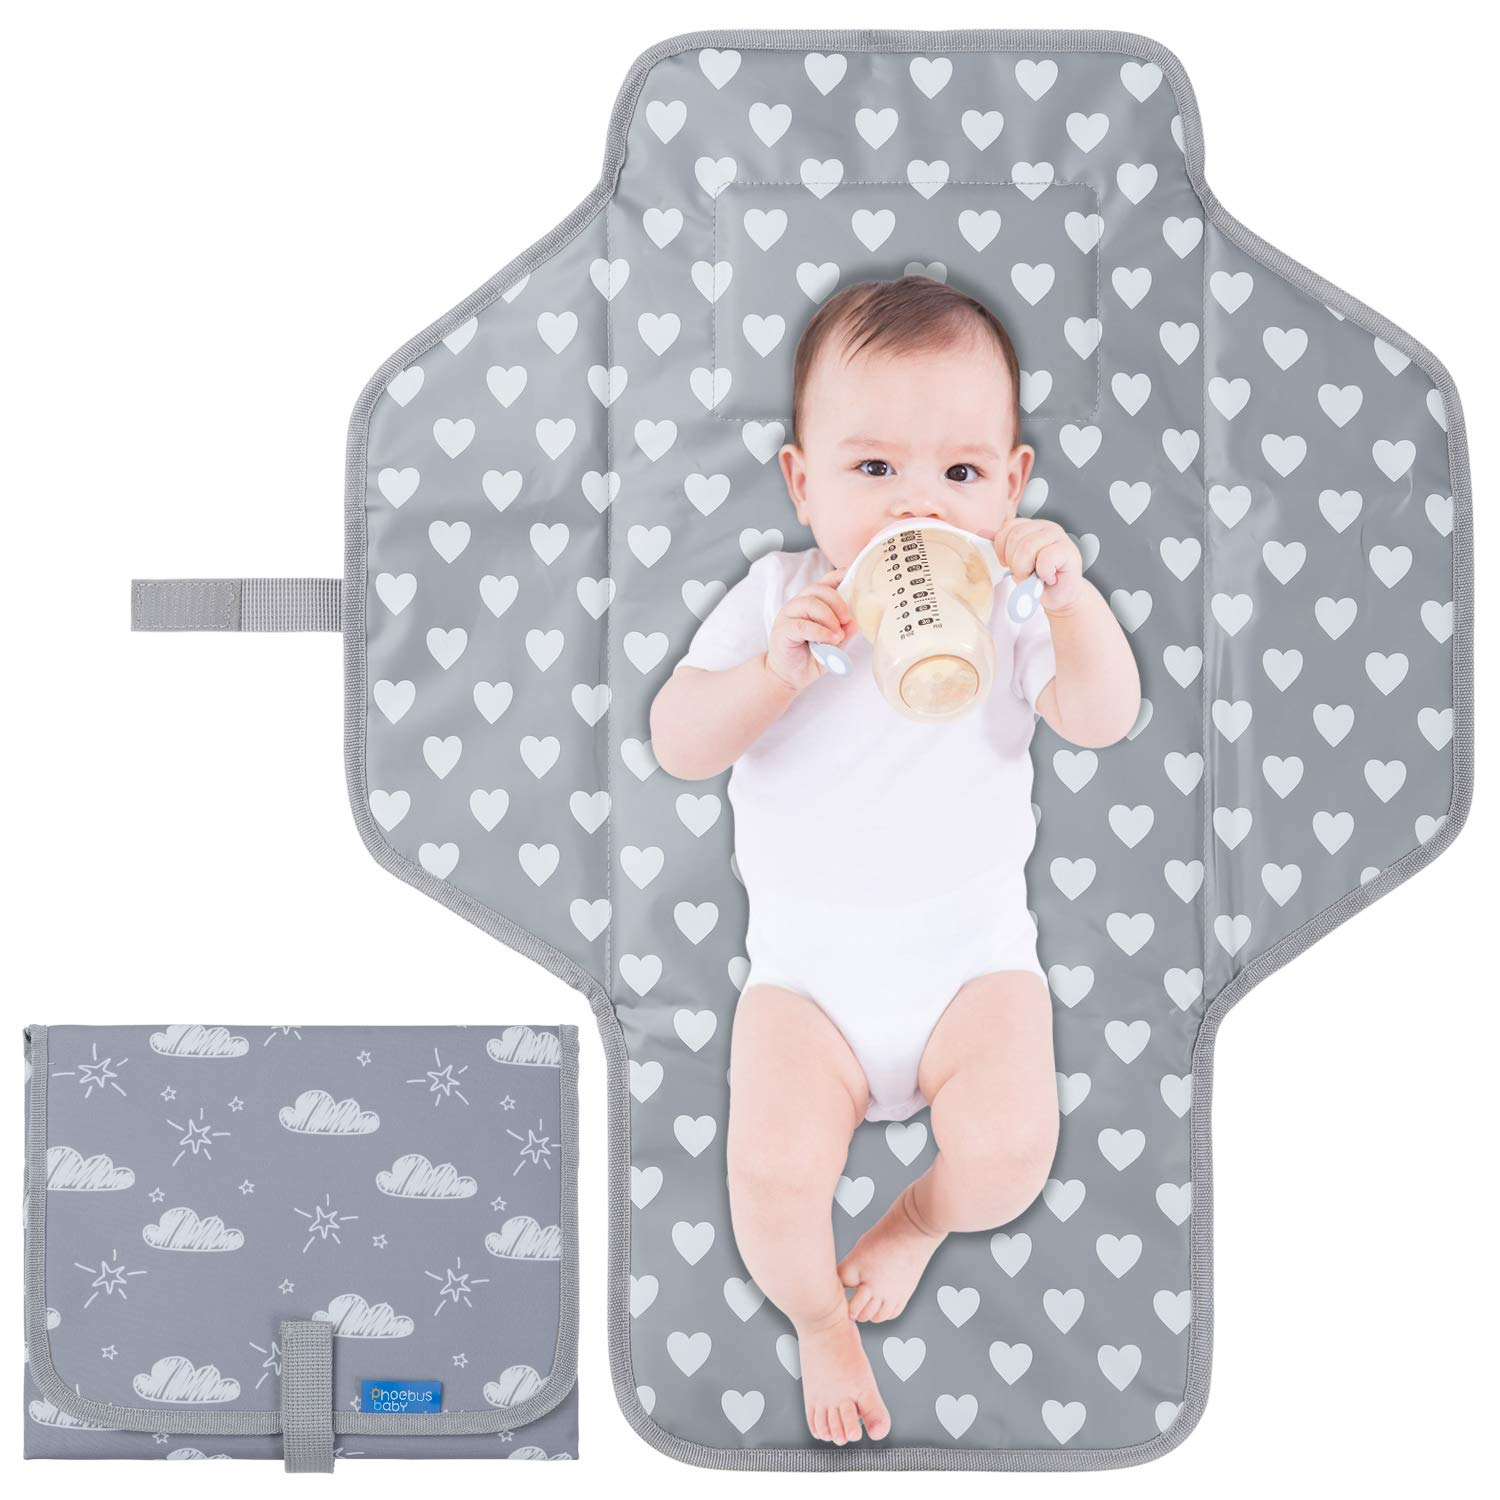 Baby Portable Changing Pad Travel - Waterproof Compact Diaper Changing Mat with Built-in Pillow - Lightweight & Foldable Changing Station for Newborn by Phoebus Baby